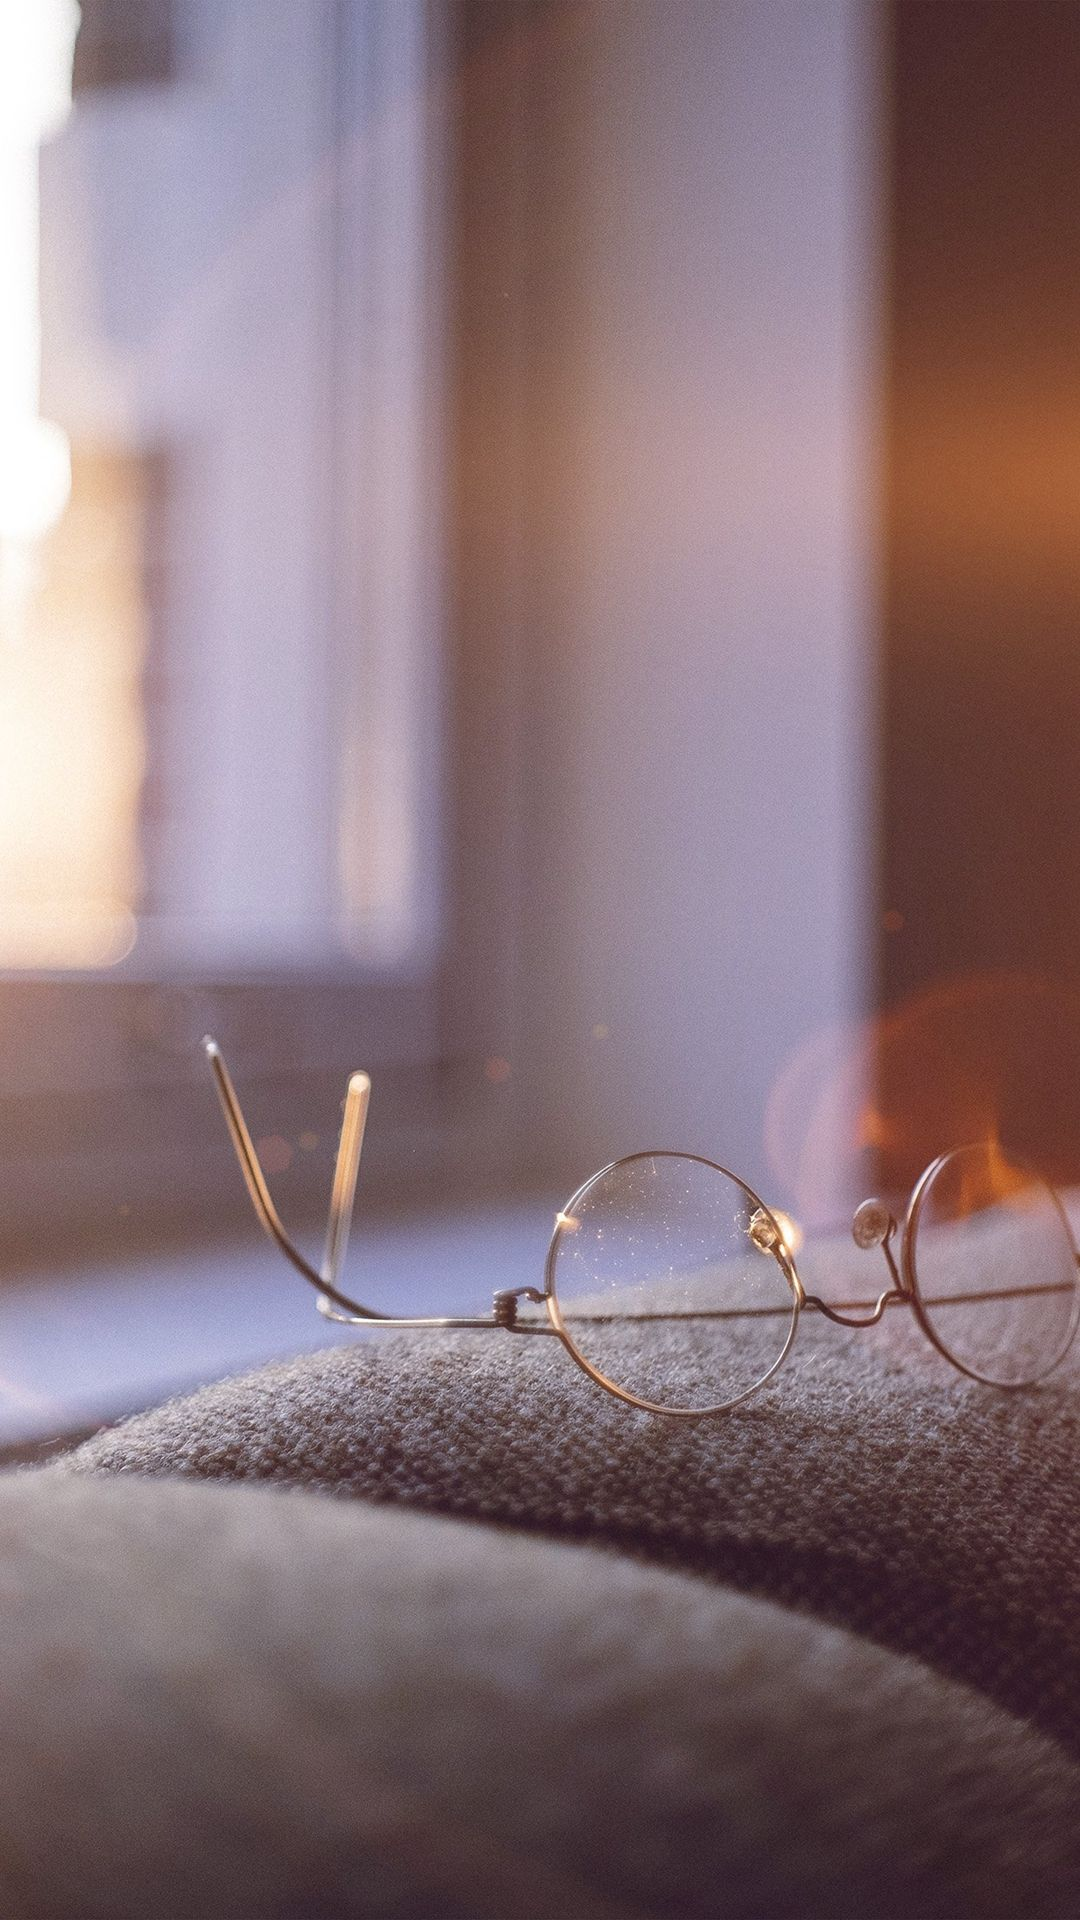 Lonely Quiet Day Home Glasses Sunlight Flare iPhone 6